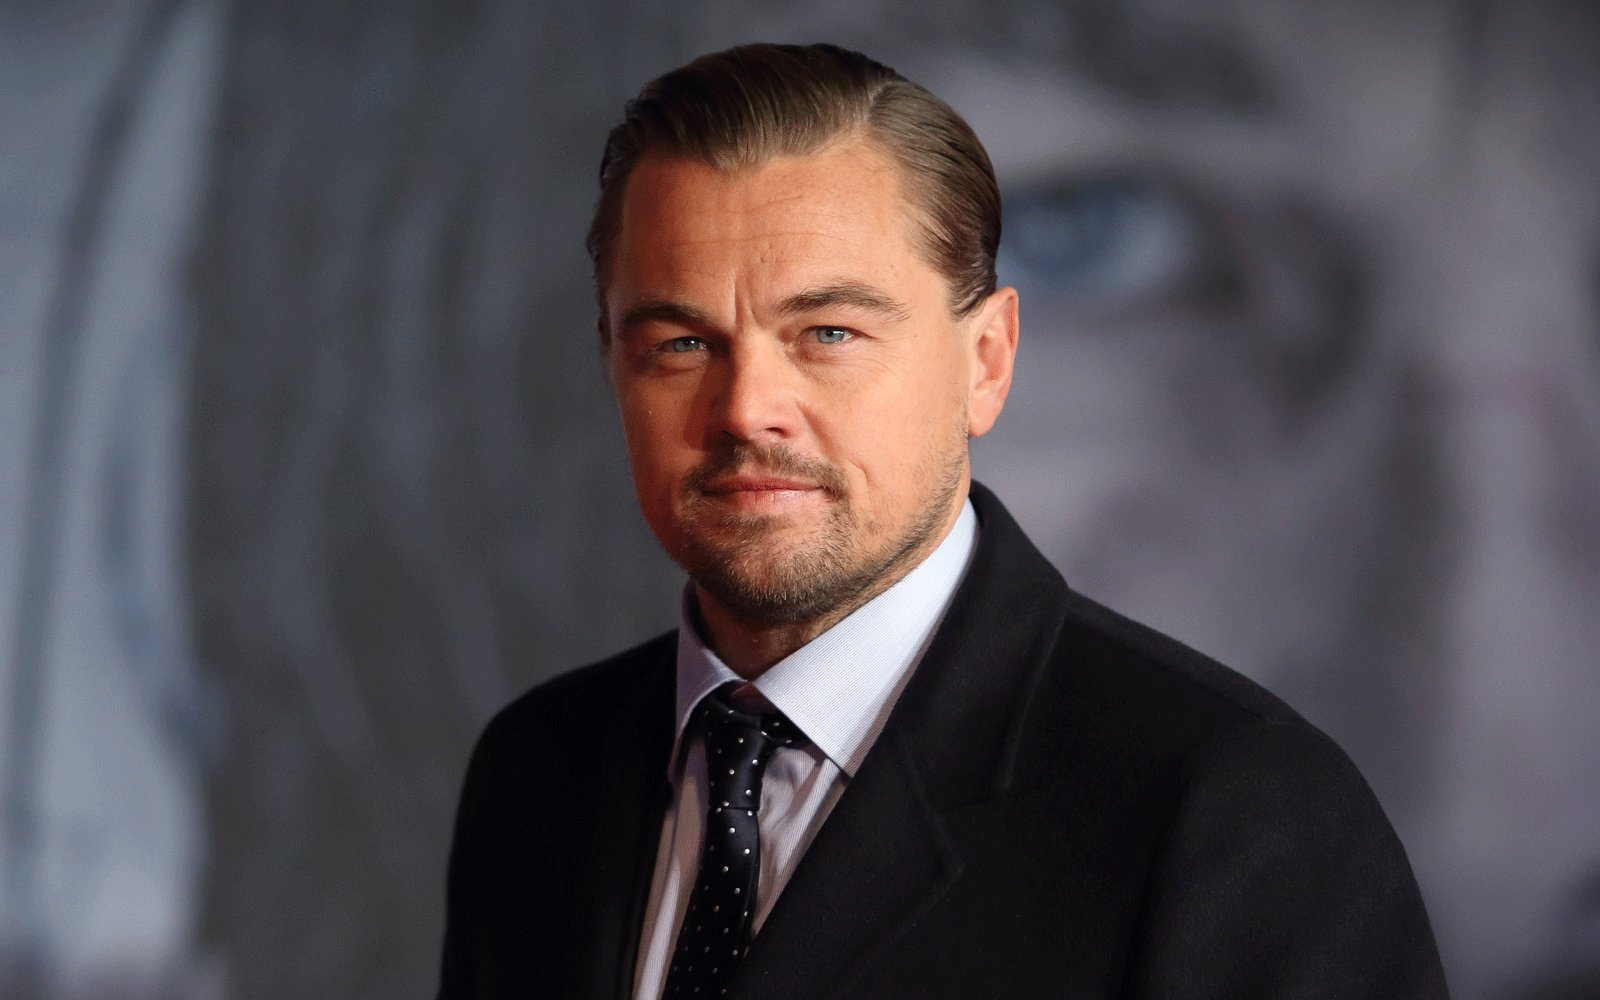 Leonardo DiCaprio rescued a stranger who fell overboard a yacht in St. Barths